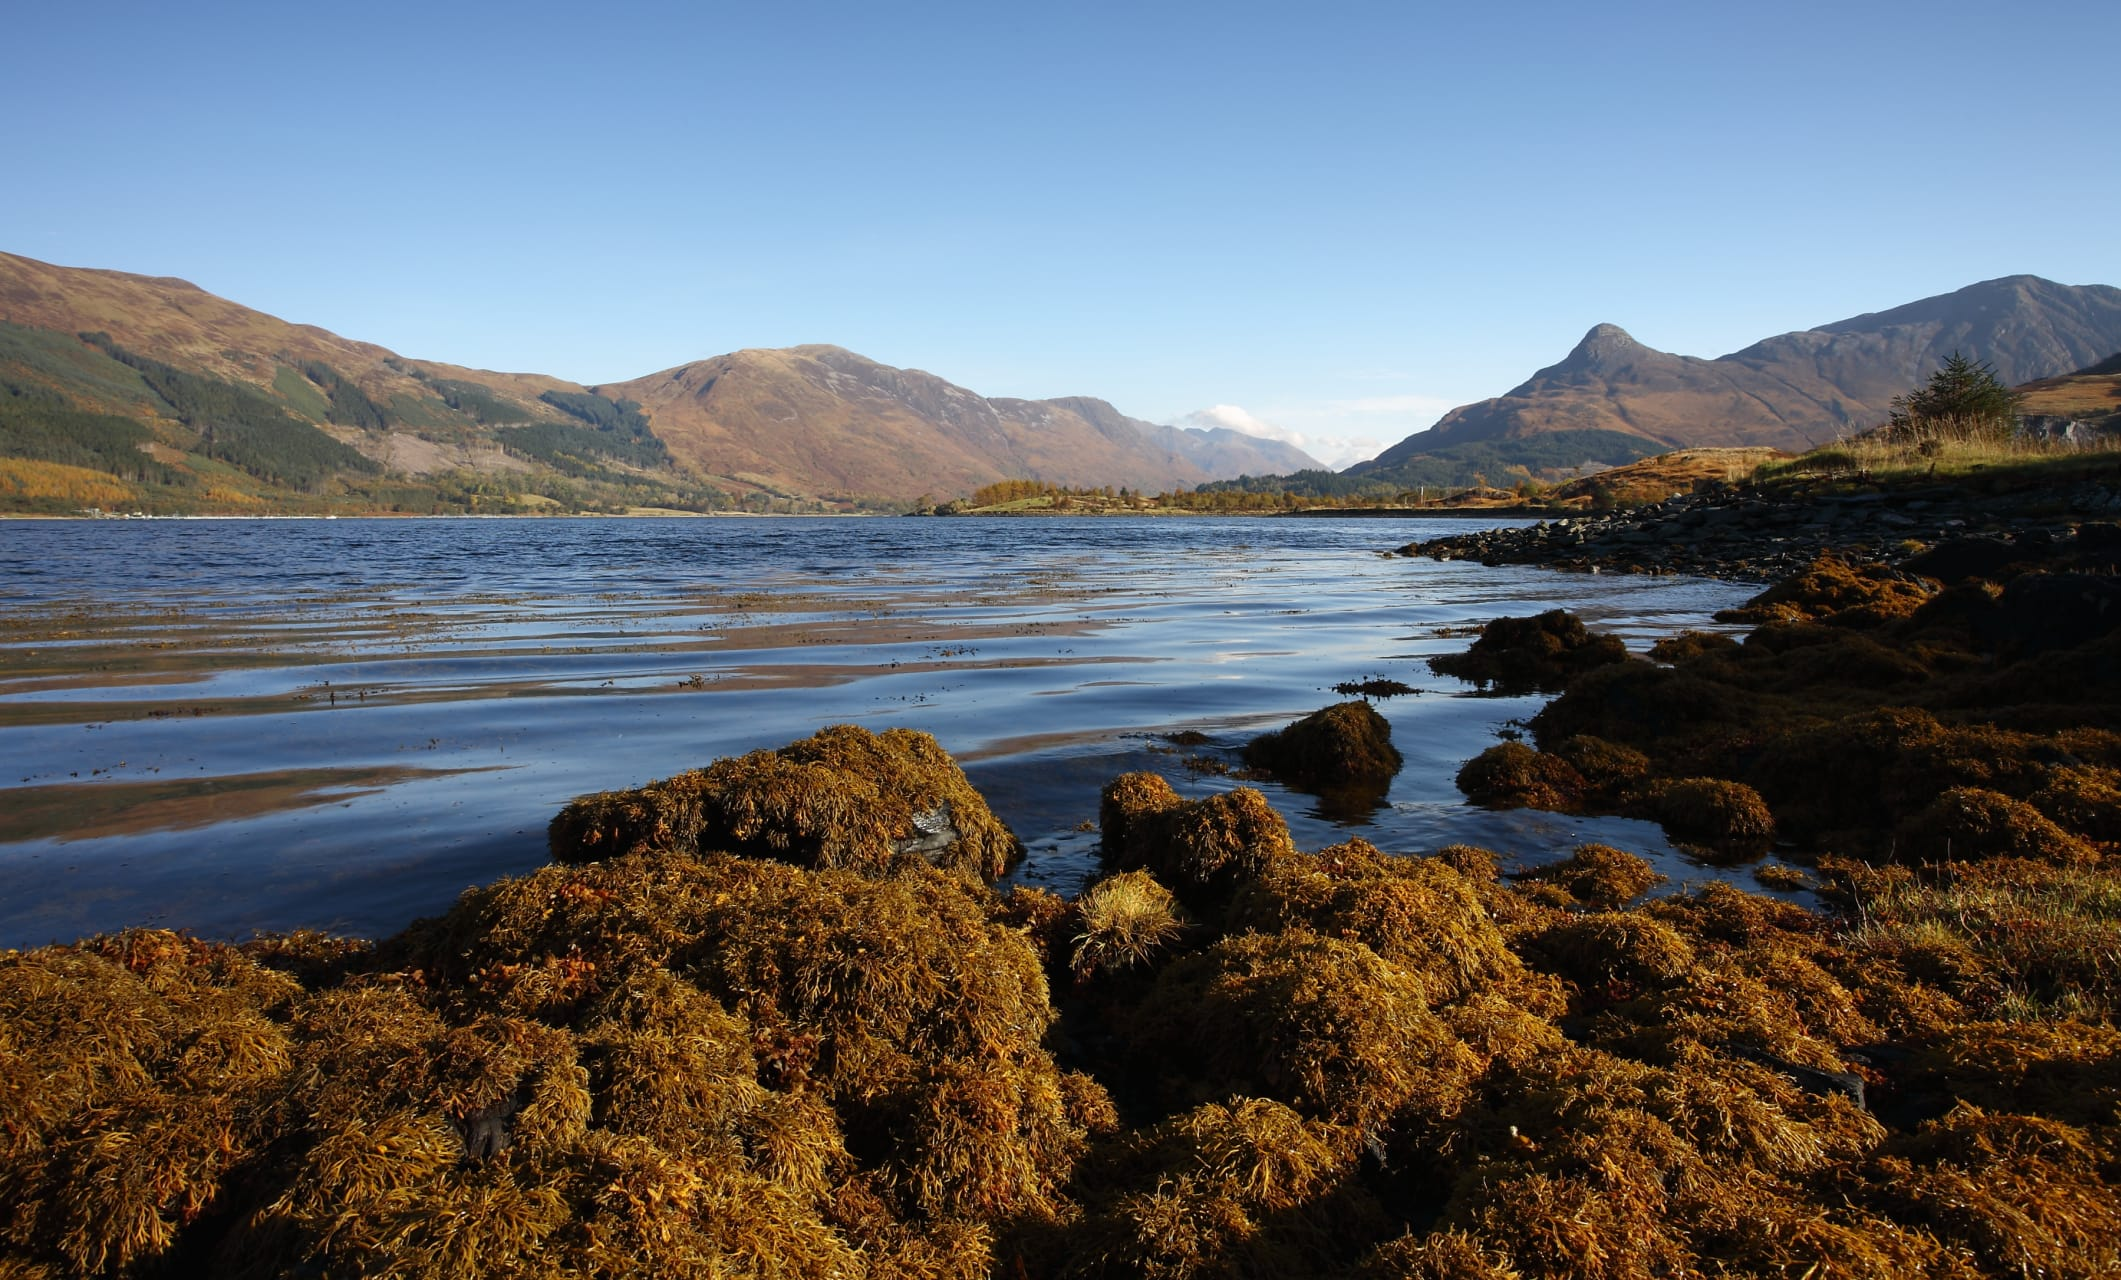 The Scottish Highlands - The Shores of Loch Leven